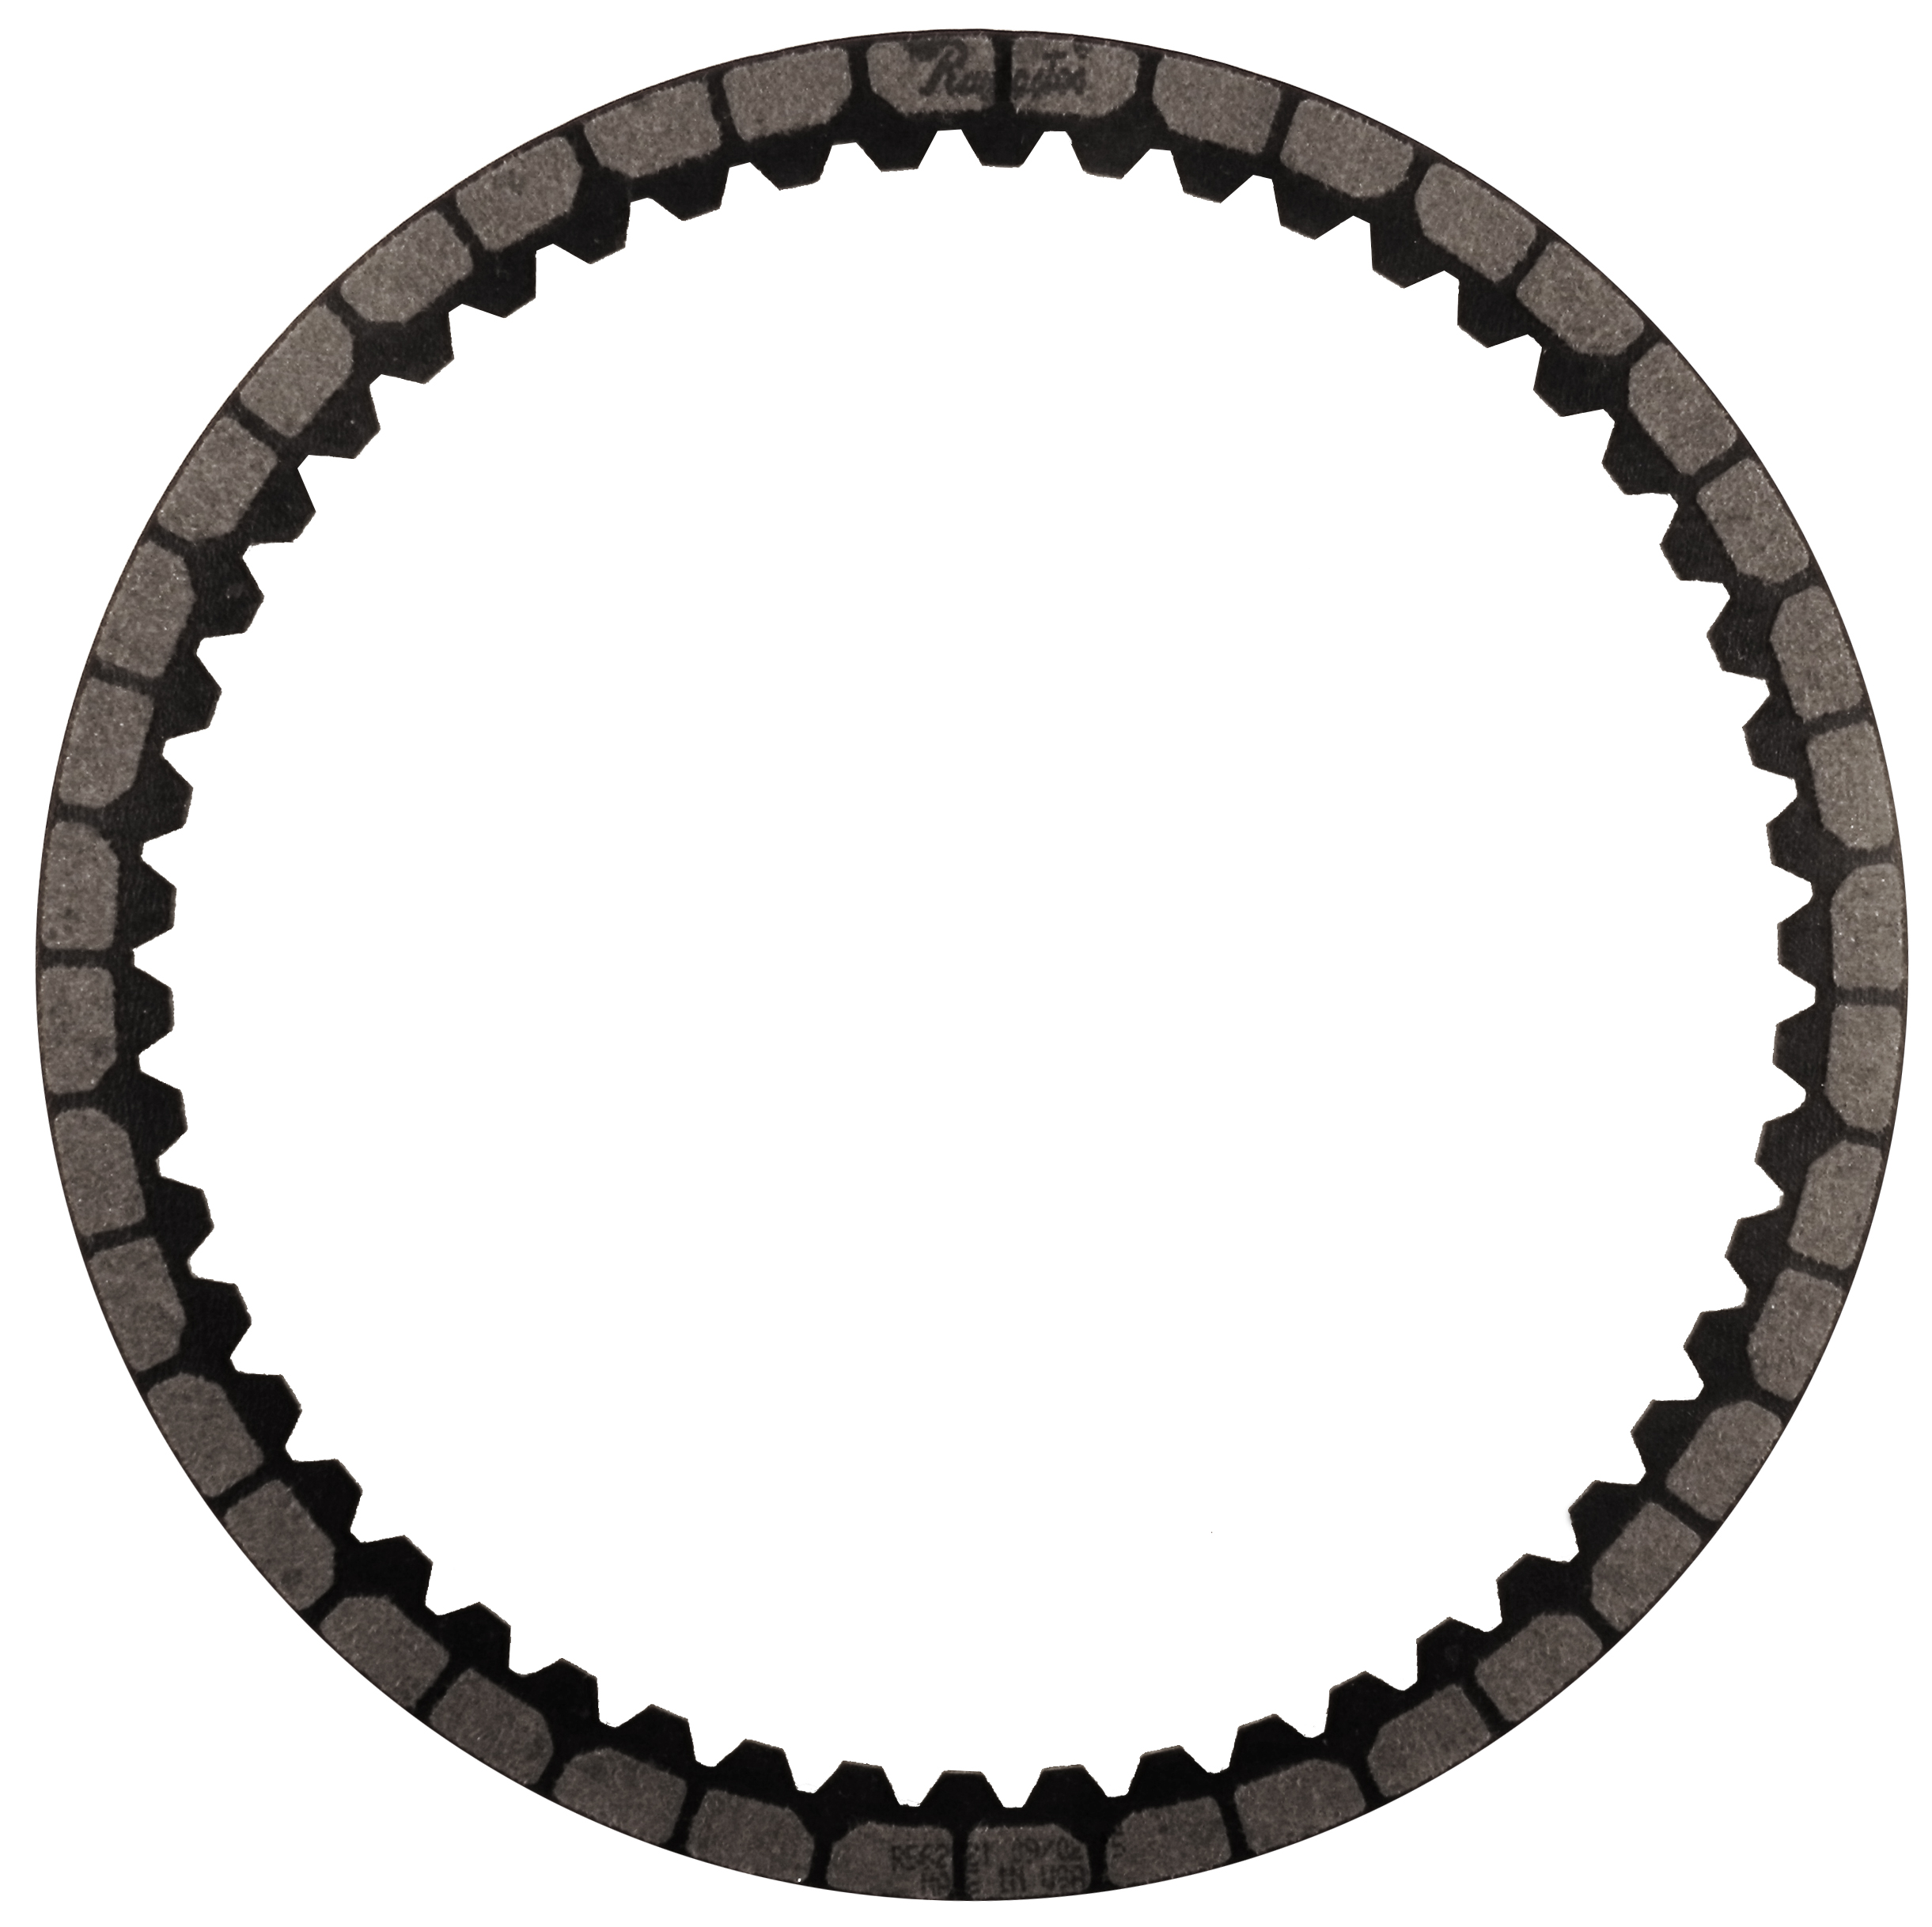 R562221 | 2007-ON Friction Clutch Plate High Energy 2nd Brake High Energy